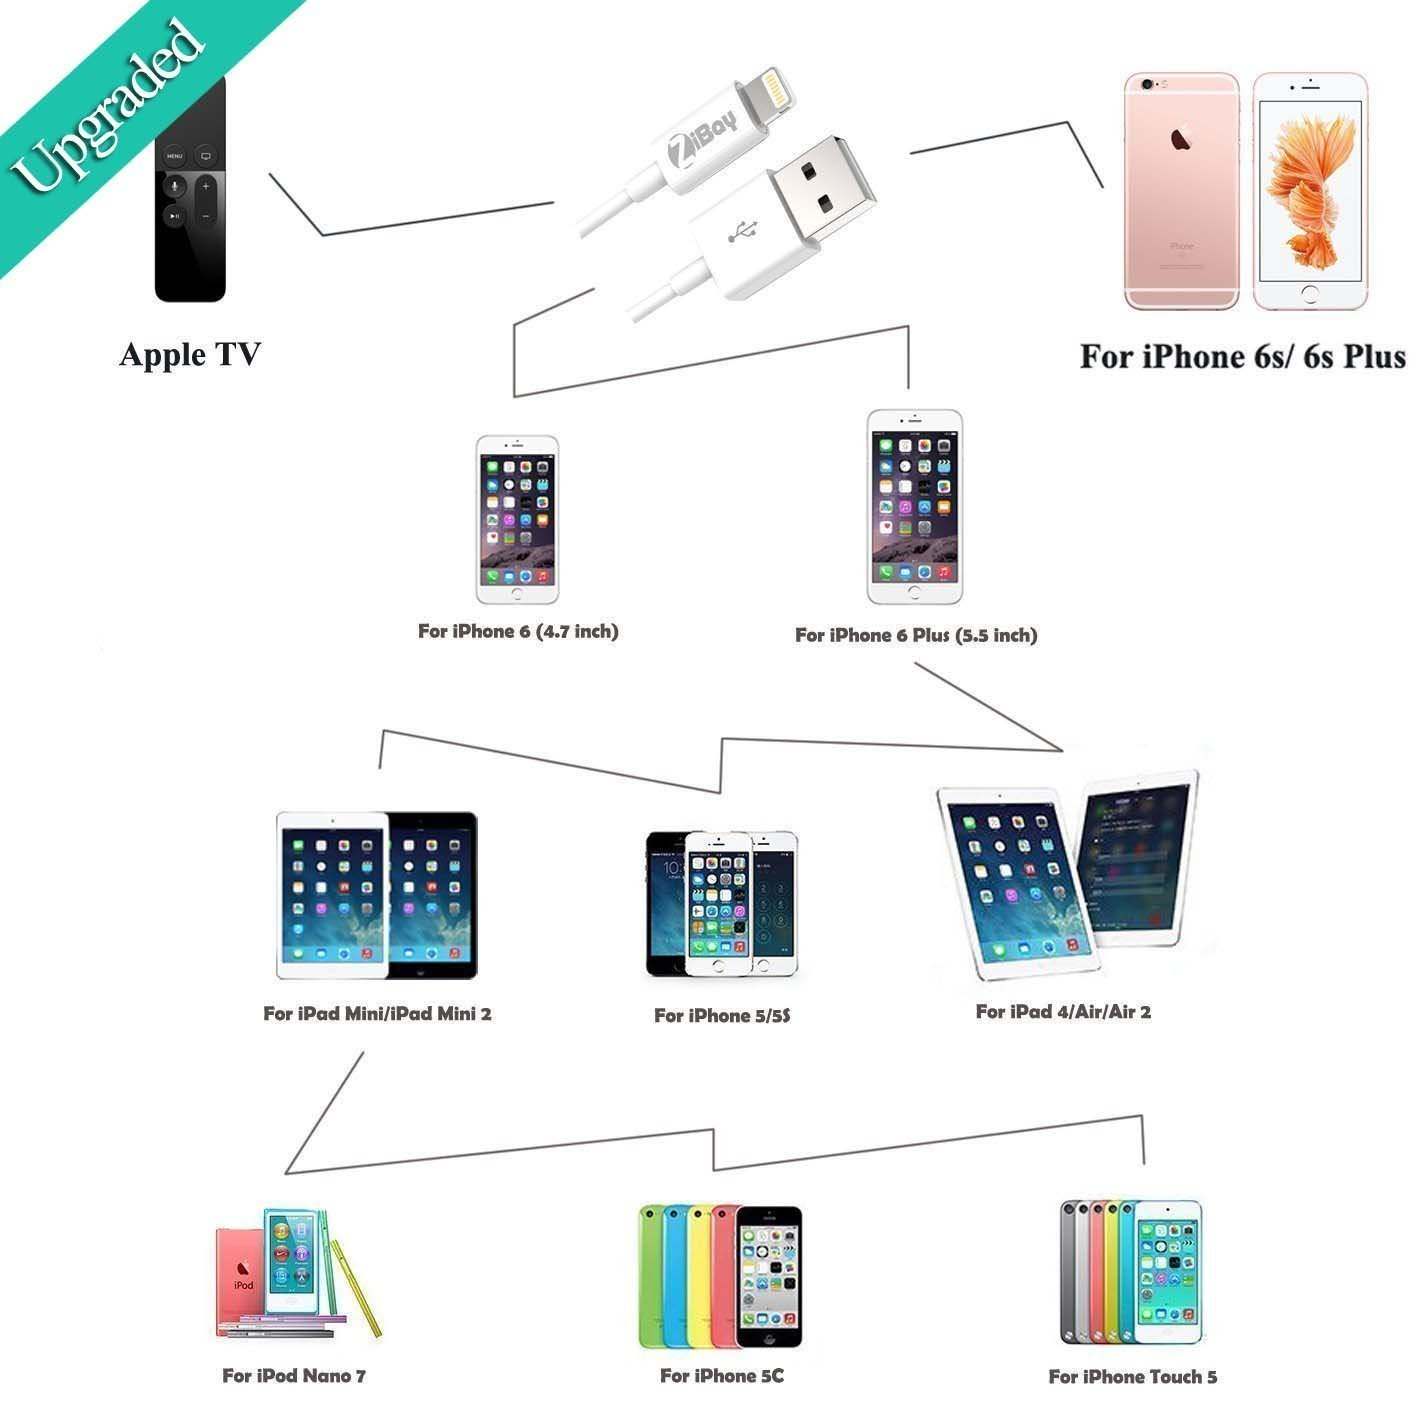 Short Lightning Cables Usb Data Cord For Iphone 6s 5 Charger Cable Wire Diagram Plus 6 Iphones Se 5s Ipad Minis Airs Ipod Touch Ipods